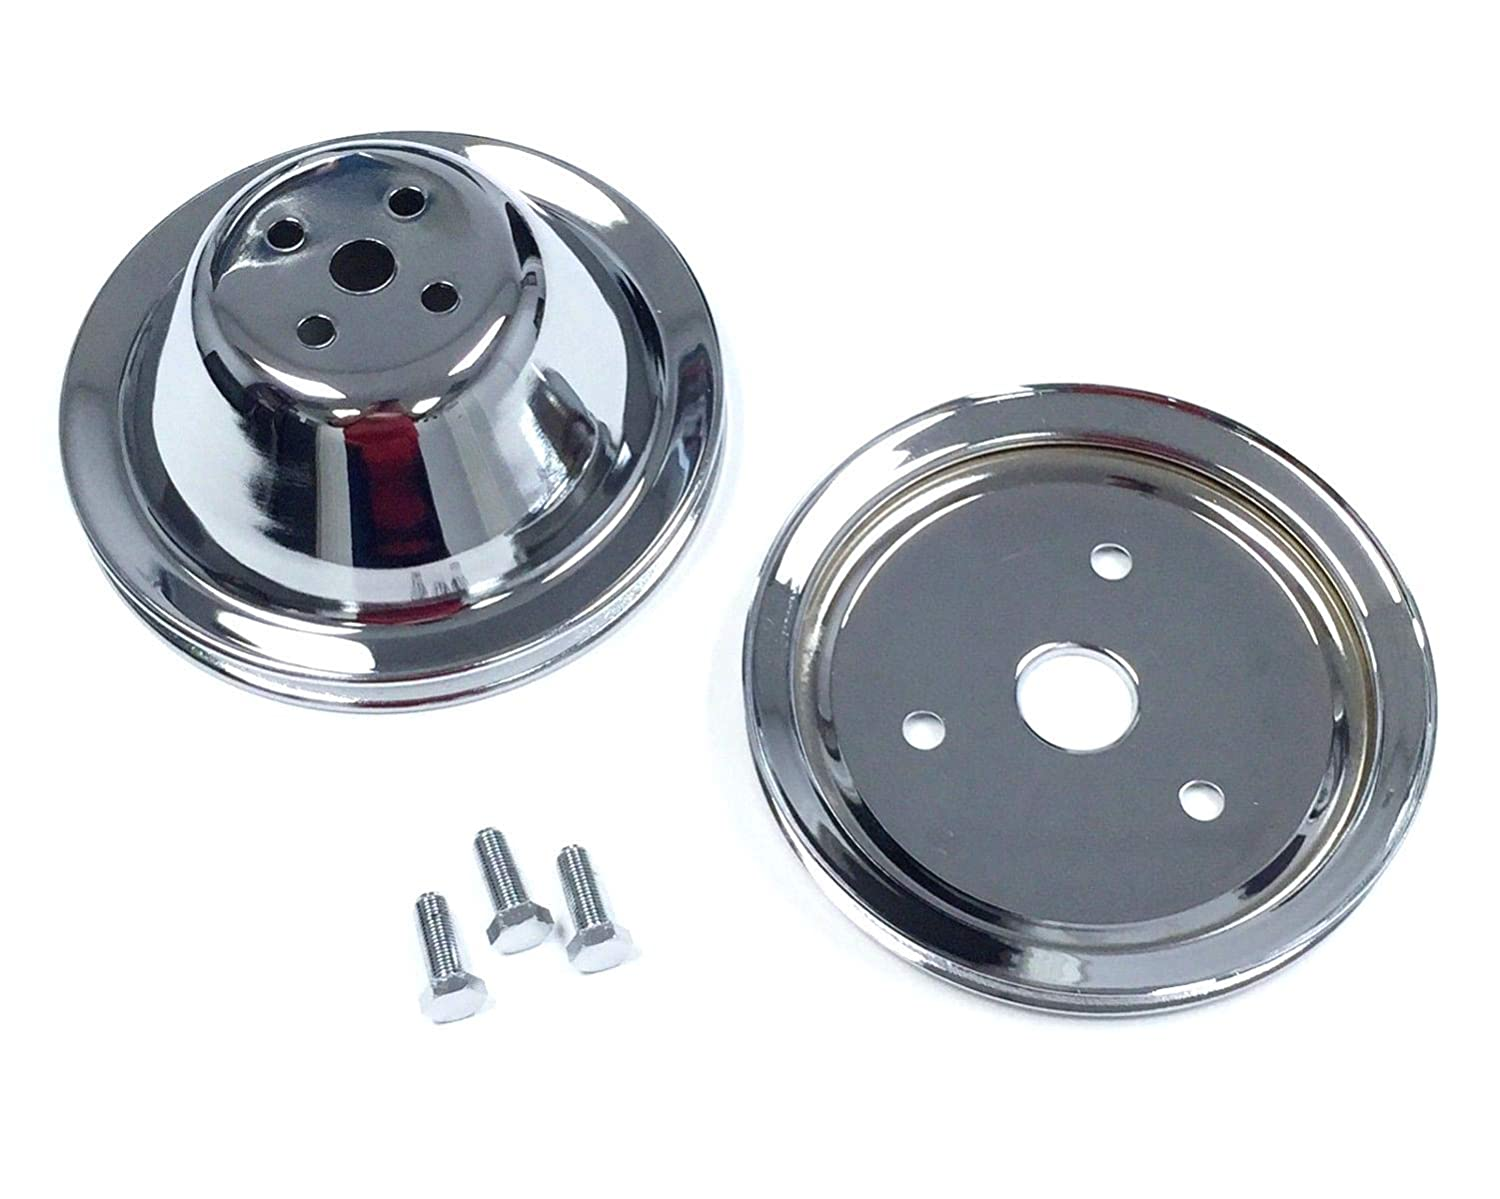 Pirate Mfg SB Chevy Short Water Pump Chrome Steel 1 Groove Pulley Kit 283 327 350 V8